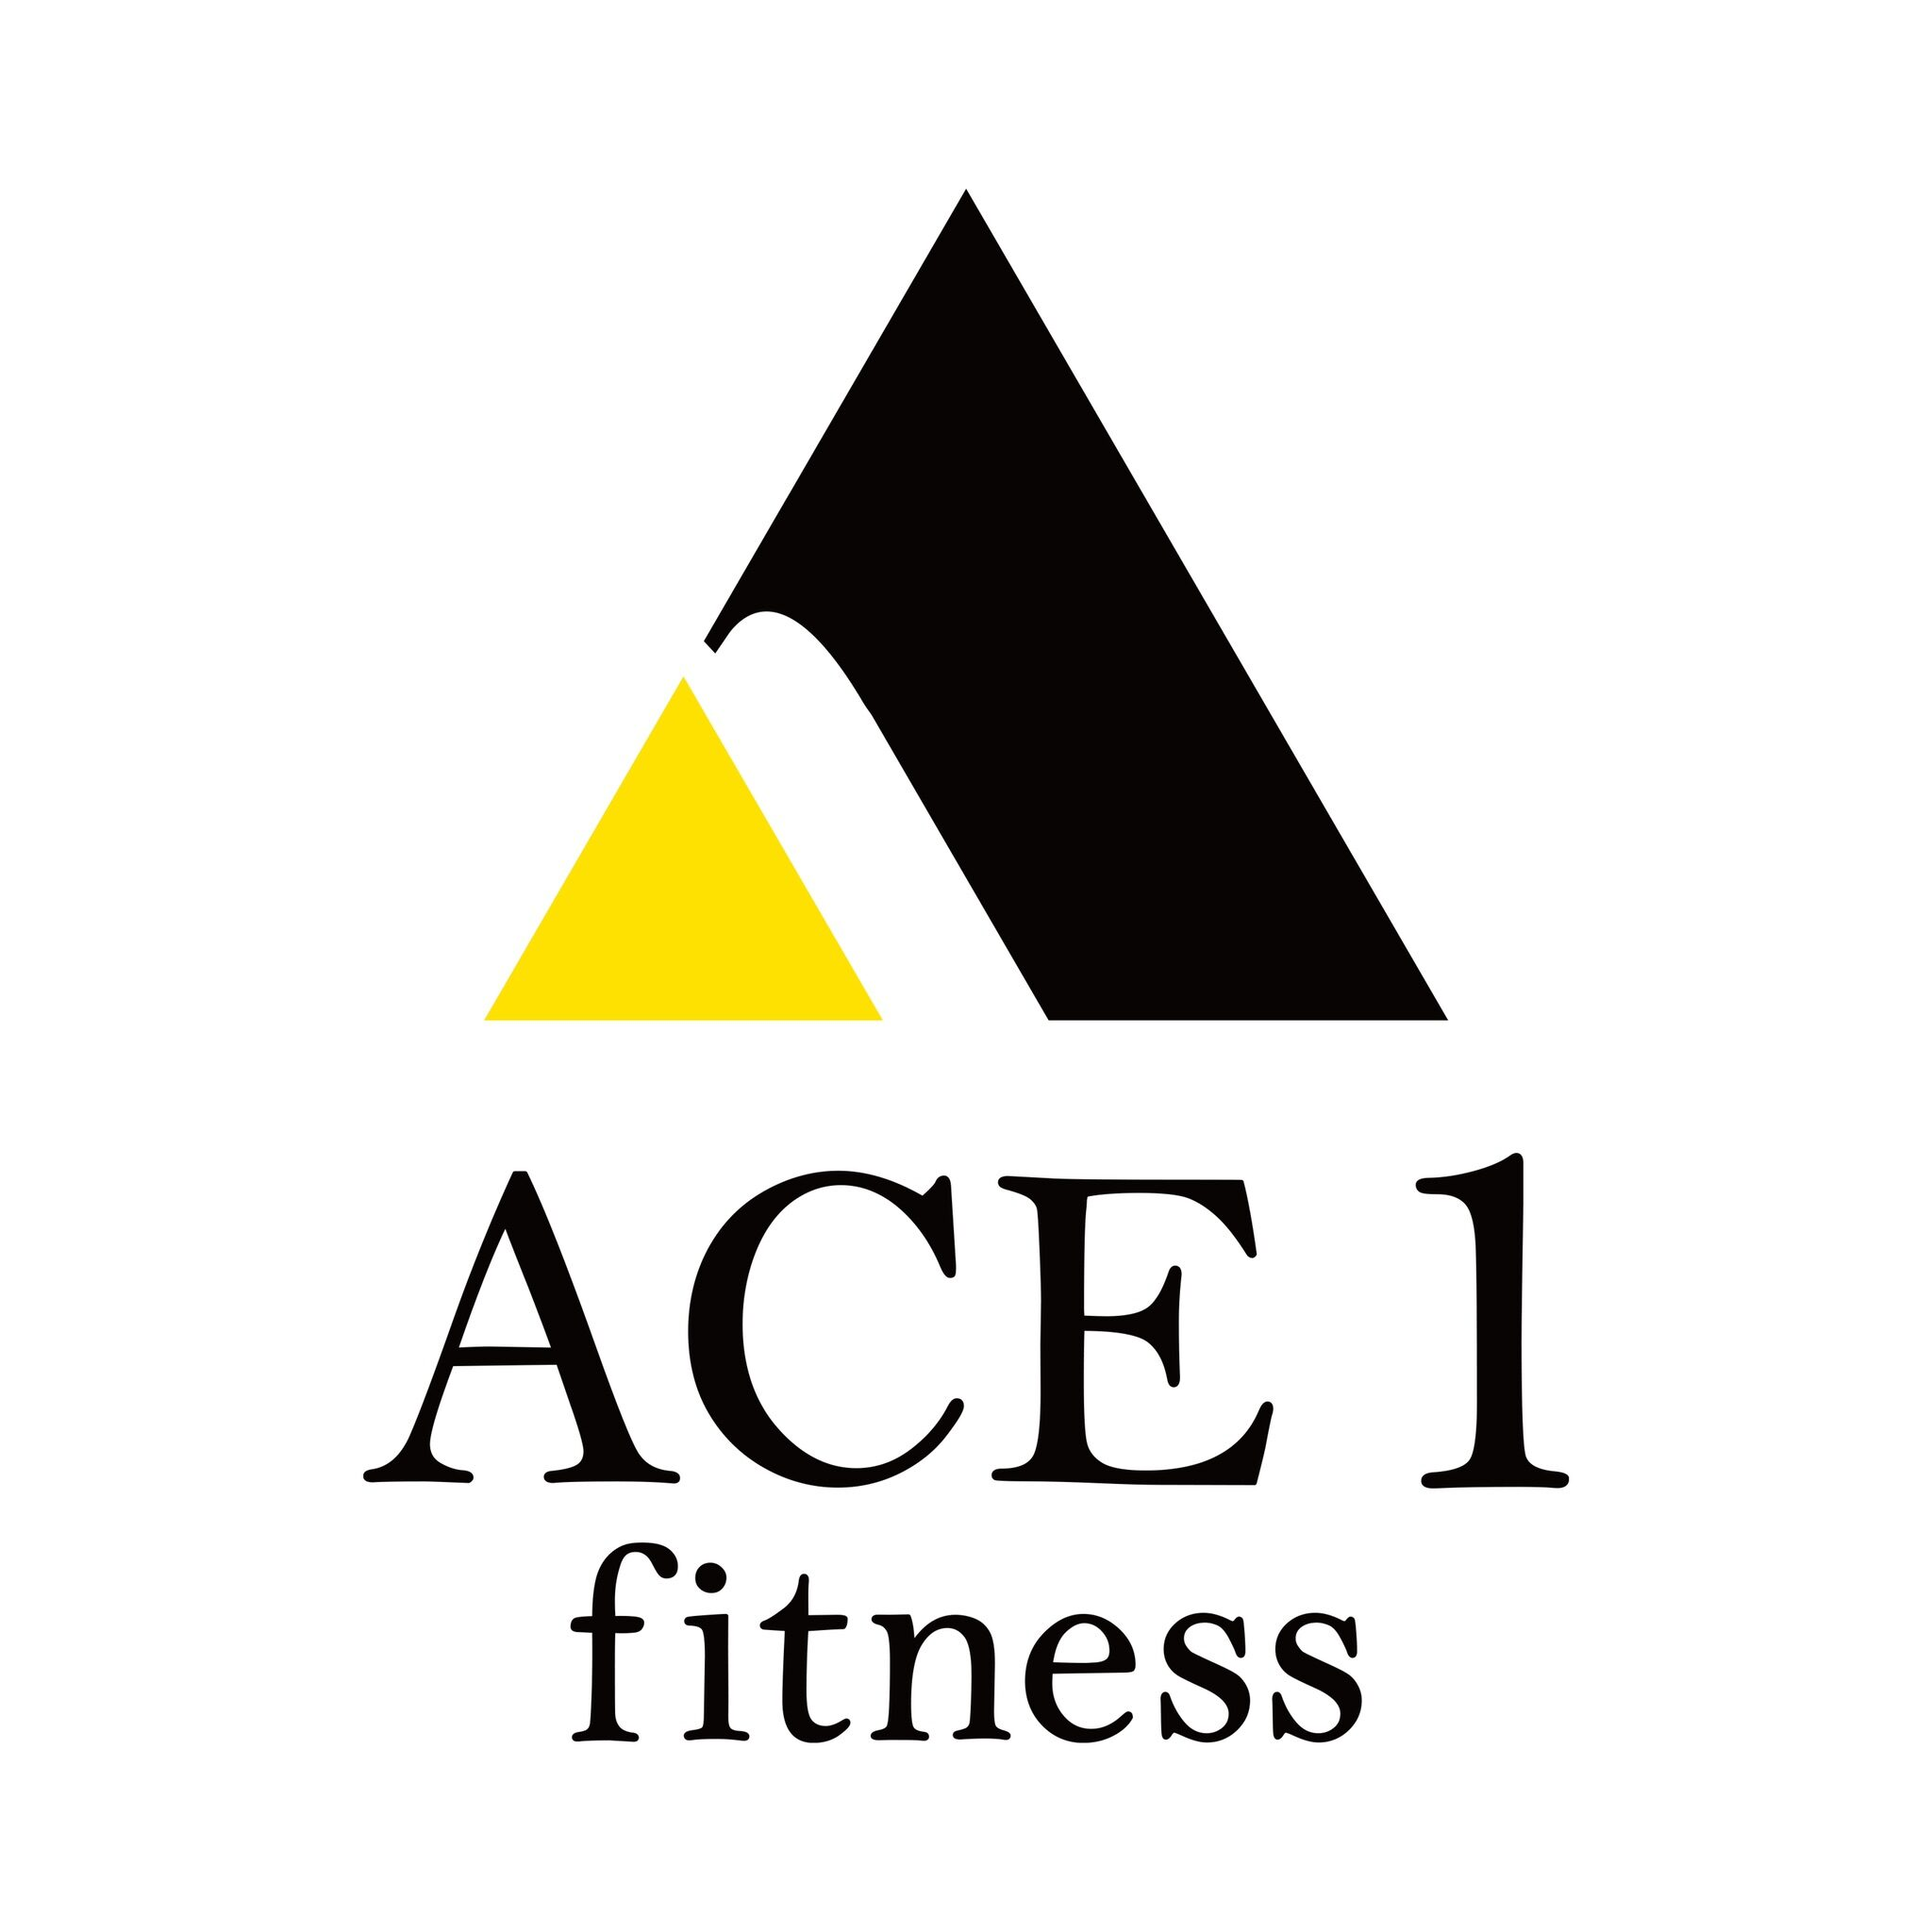 ACE1 fitness